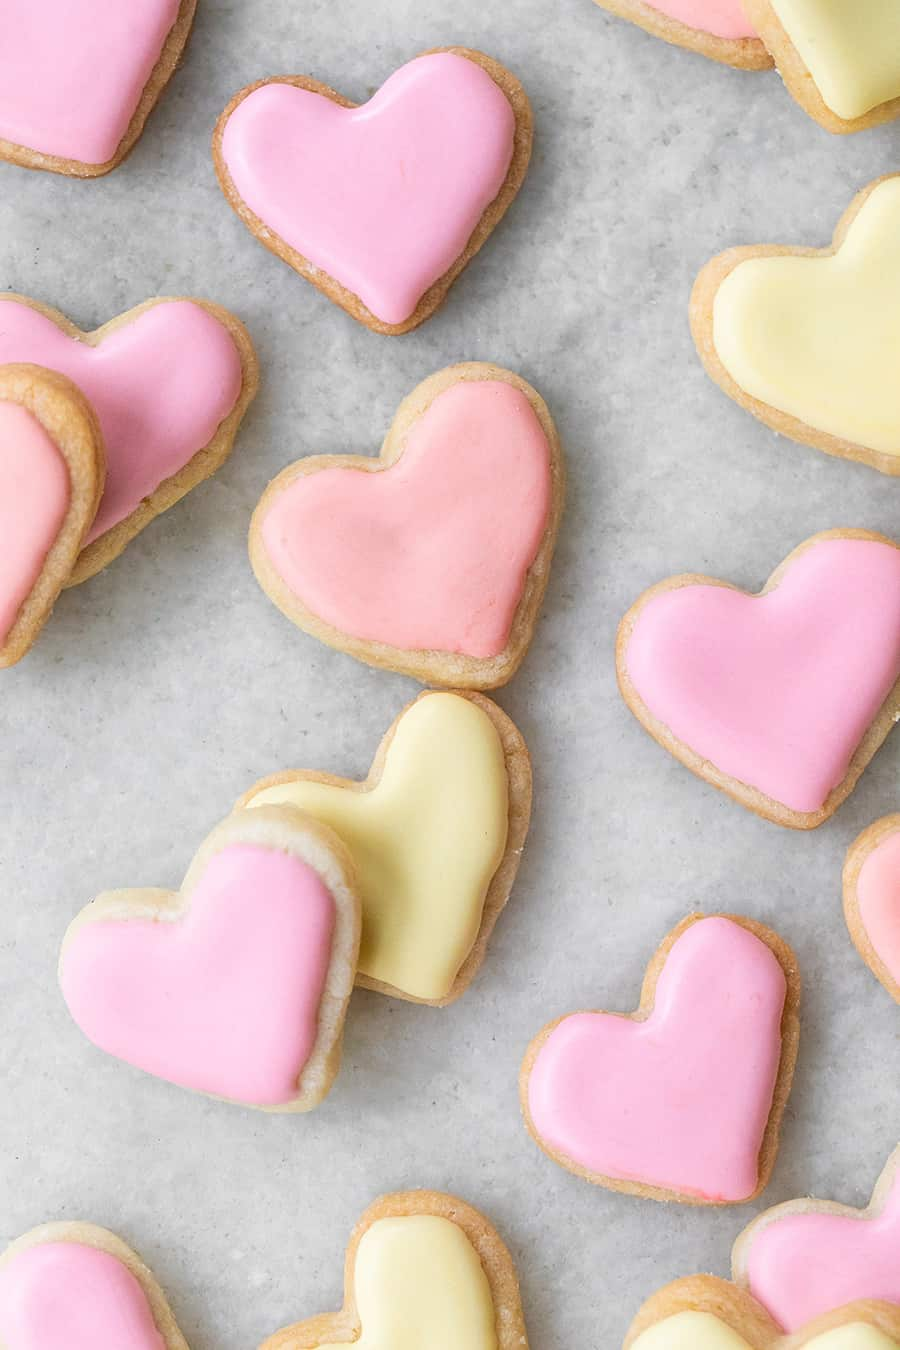 mini heart shaped sugar cookies frosting in pink and yellow royal icing on a marble table.